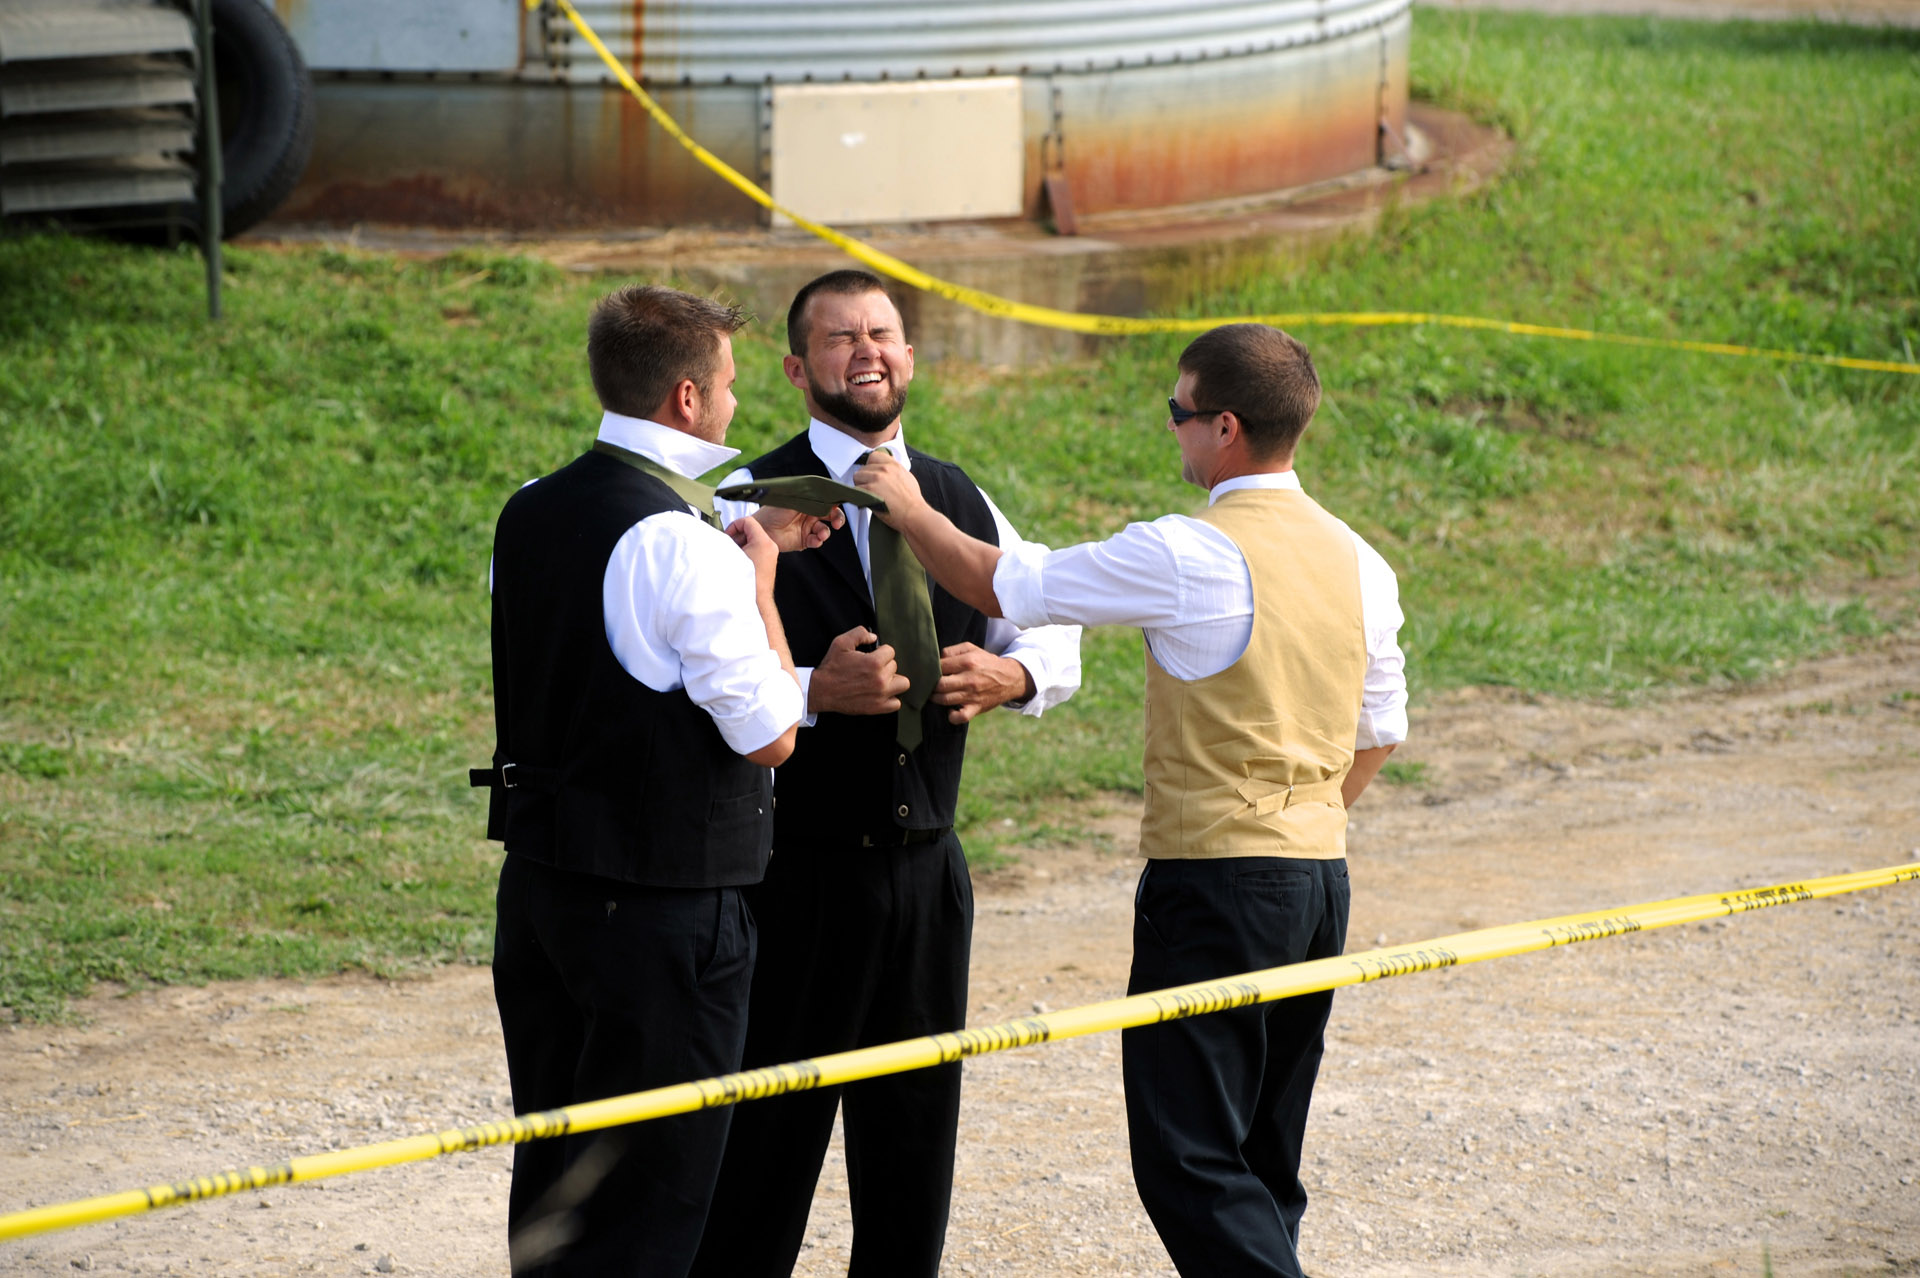 A farm wedding in Michigan shows the groom helping a groomsman adjust his tie at a Michigan country wedding.